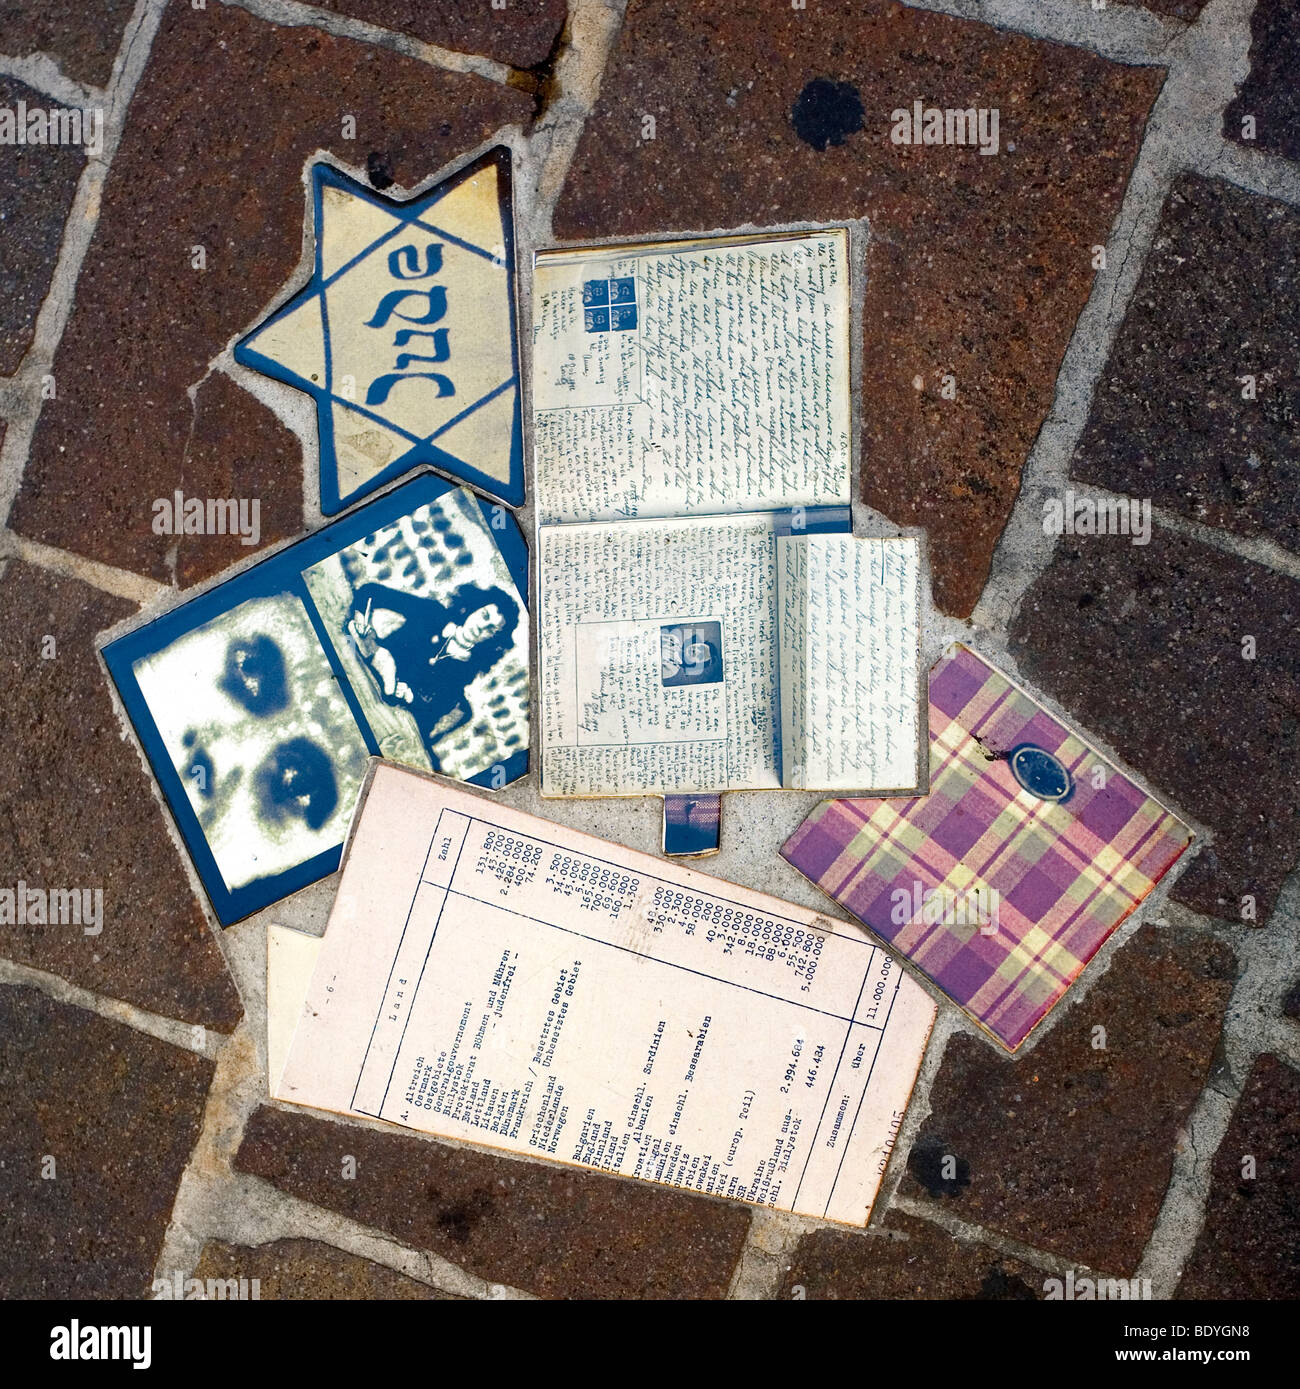 The Anne Frank Holocaust Memorial Collage in the Piazza Del Popolo of the town of Pesaro, Marche, Italy - Stock Image